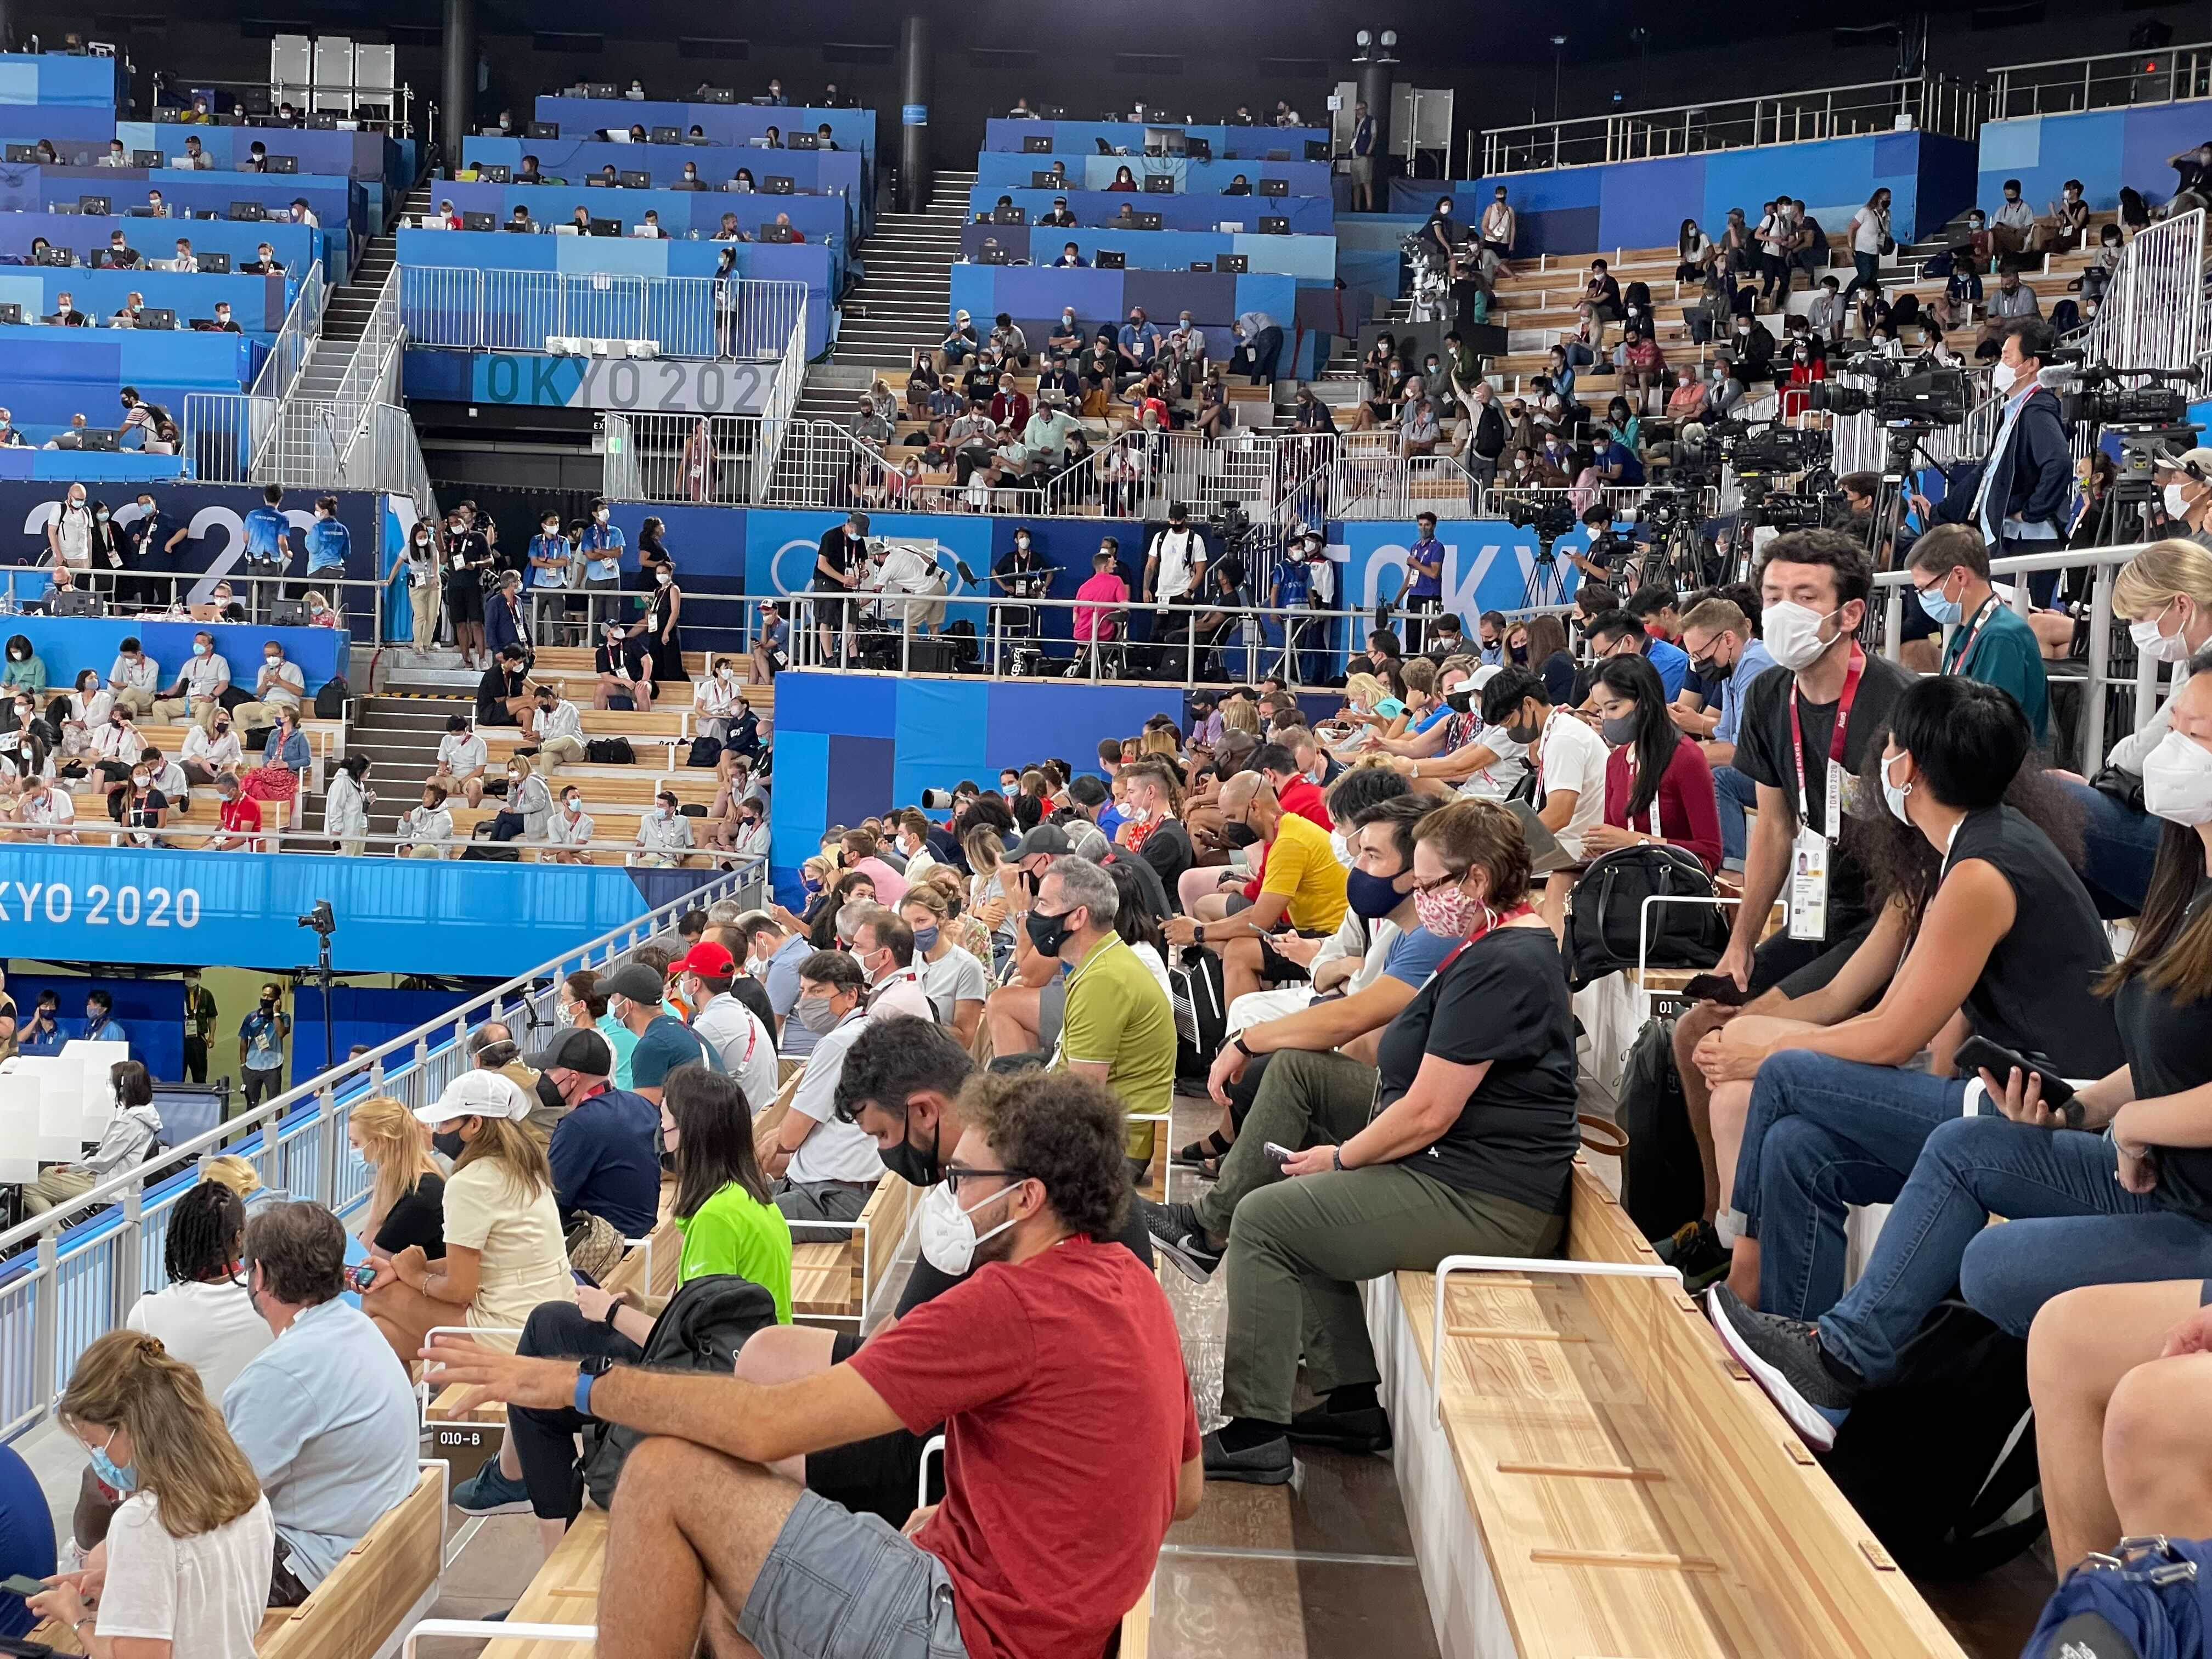 Members of the media are seen in the stands ahead of the women's balance beam final event.